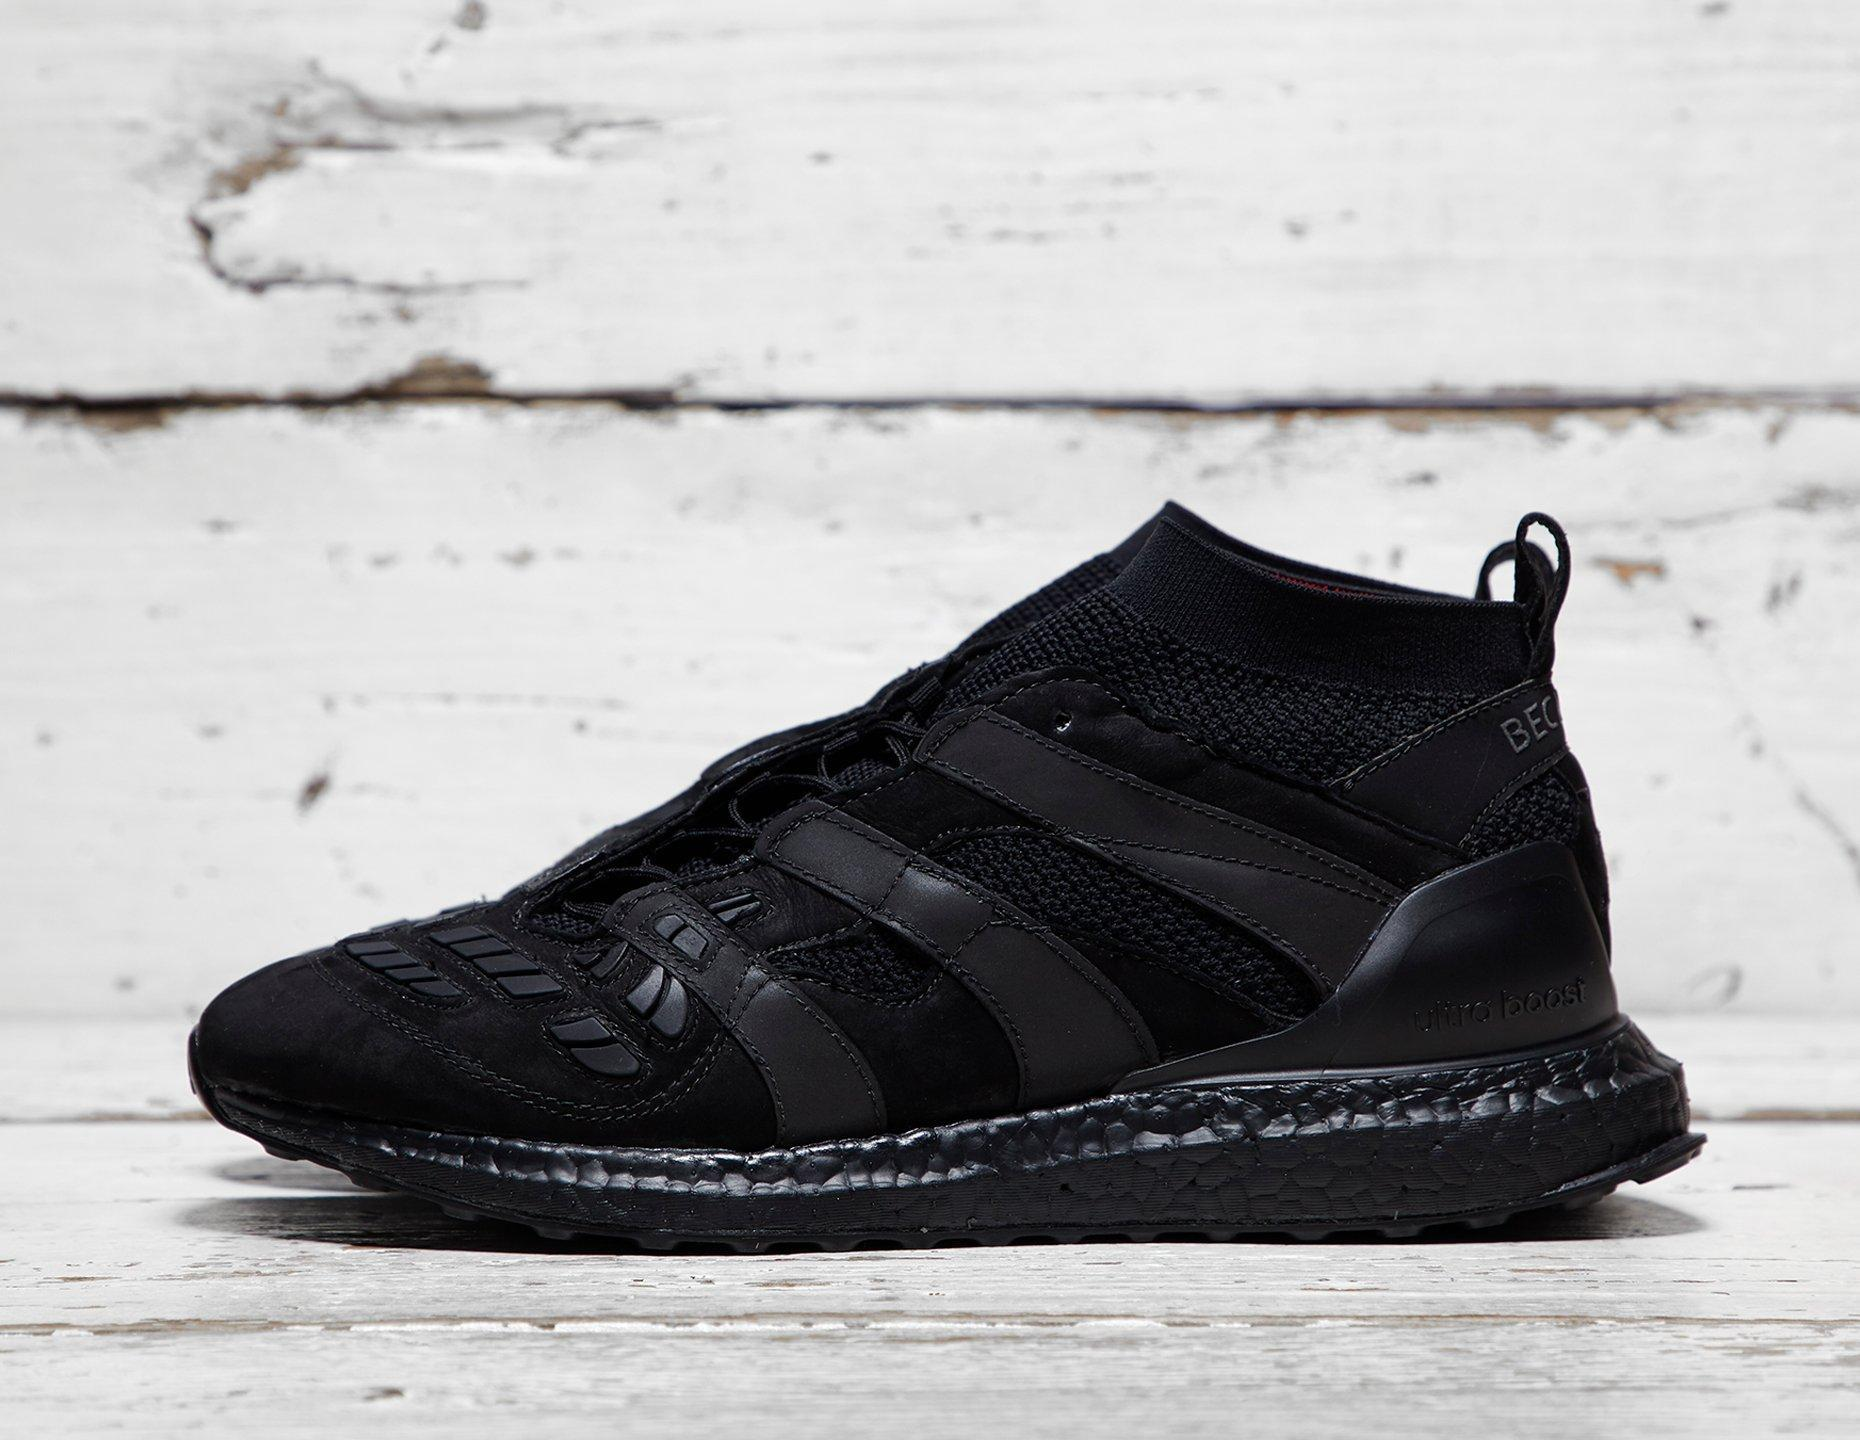 Lyst - Adidas Originals X David Beckham Accelerator in Black fb5b306c9